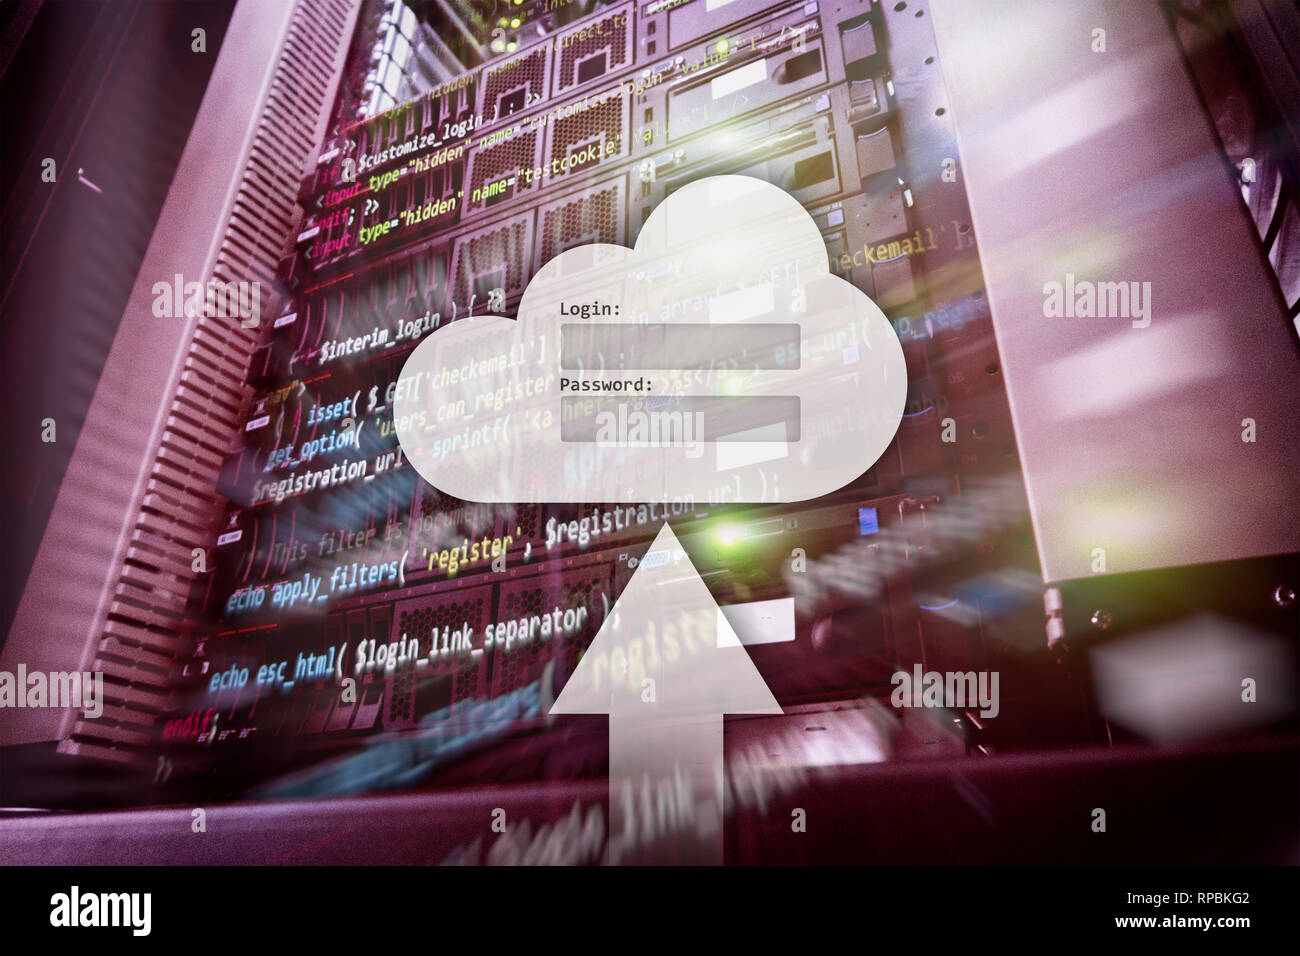 Cloud storage, data access, login and password request window on server room background. Internet and technology concept. Stock Photo